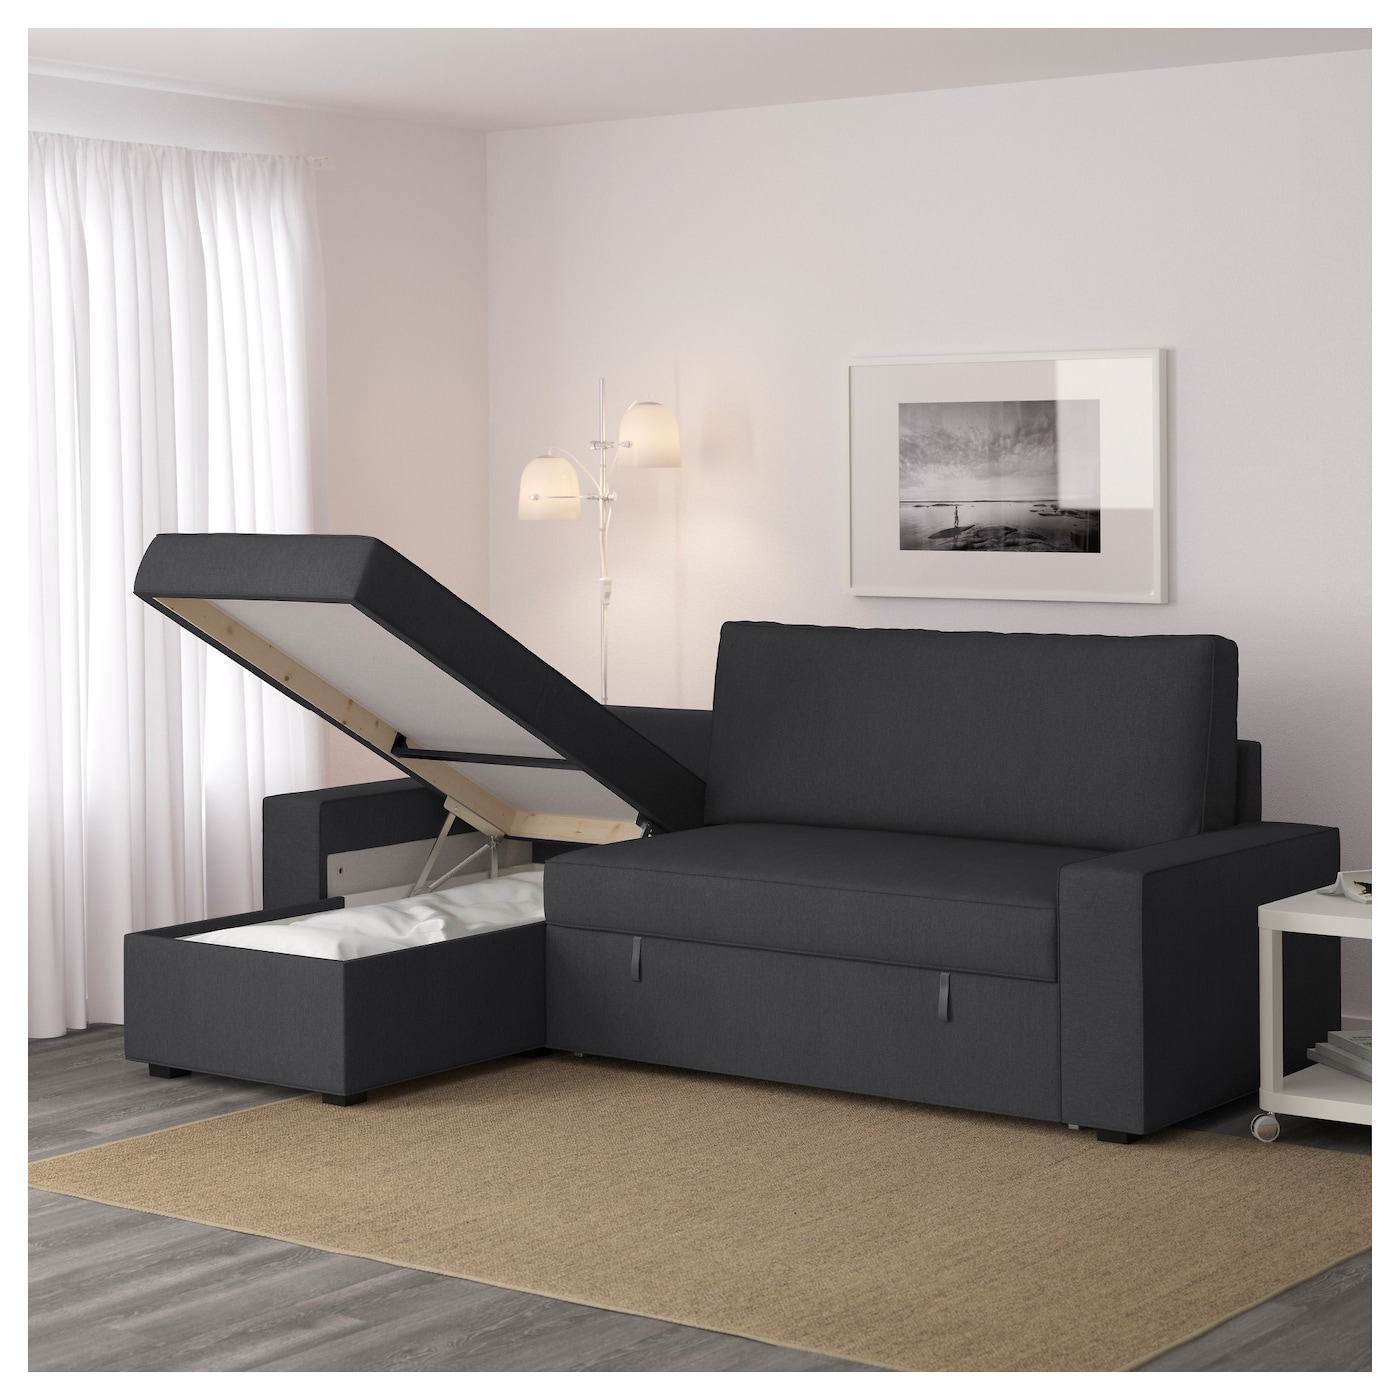 Vilasund sofa bed with chaise longue dansbo dark grey ikea - Chaise longue en rotin ancienne ...